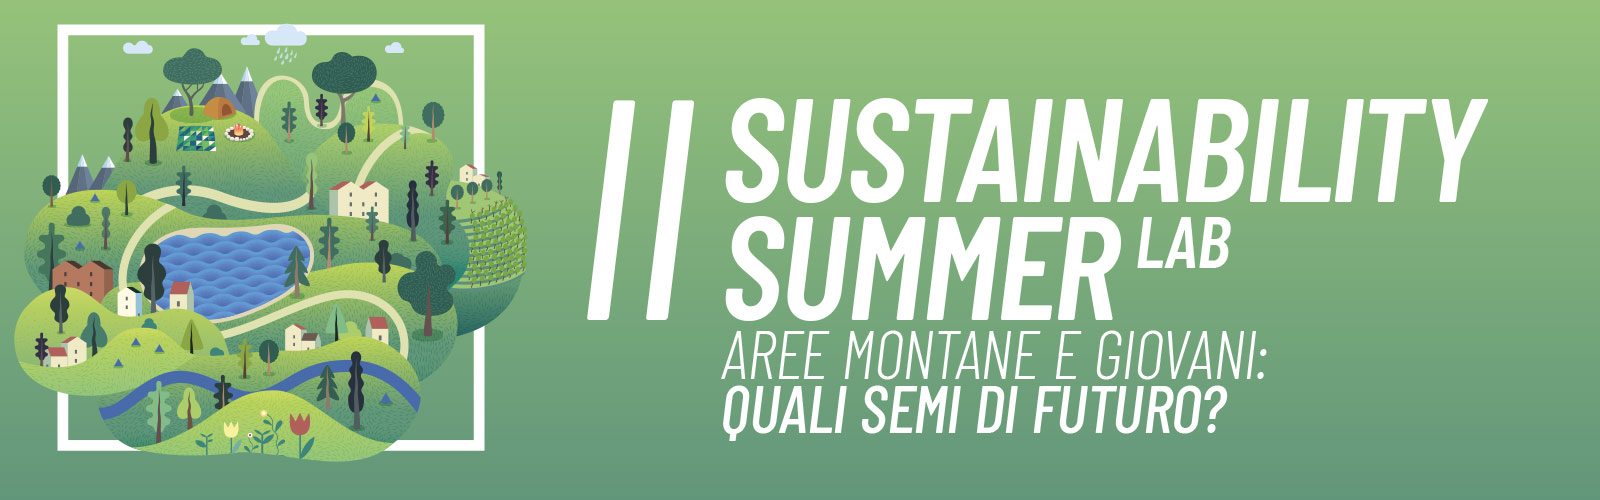 Sustainability Summer Lab 2019: